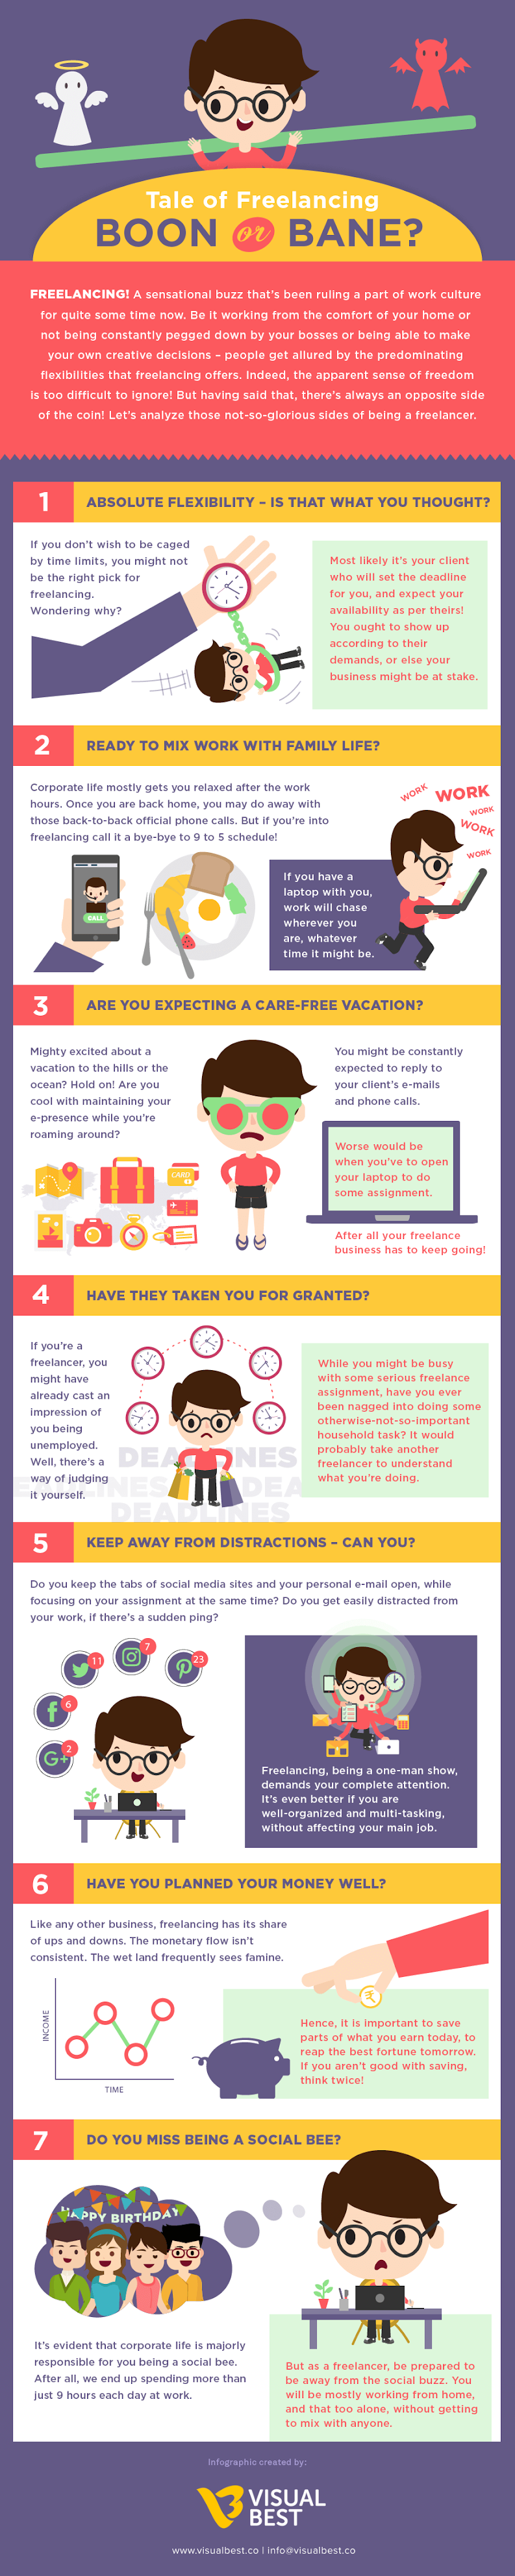 Tale of Freelancing: Boon or Bane? #infographic